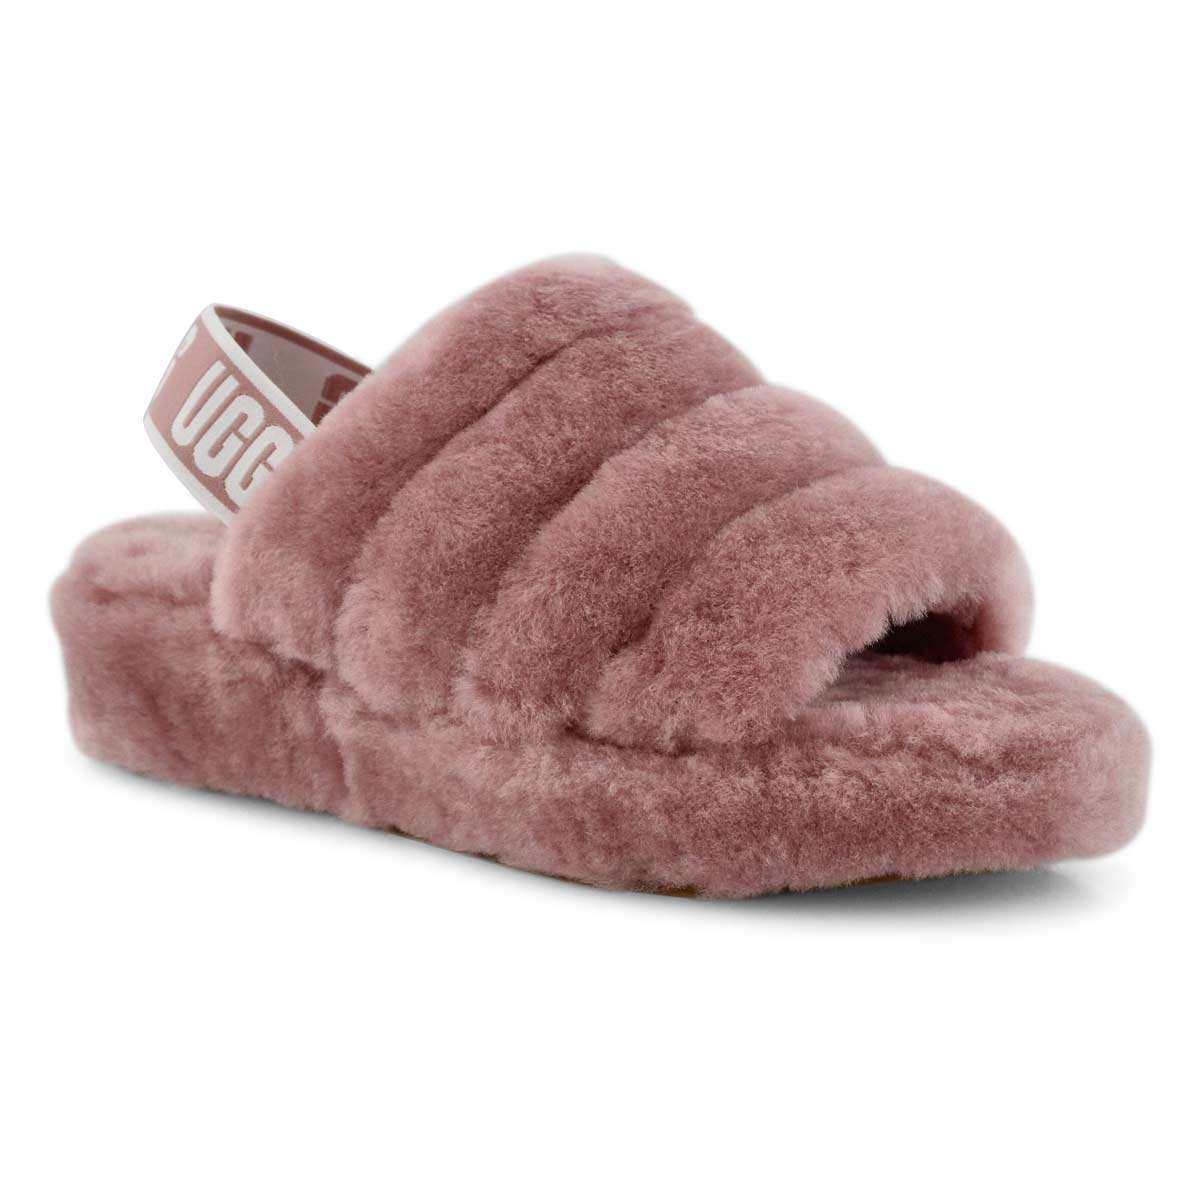 162bc062f48 Women's FLUFF YEAH pink sheepskin slippers